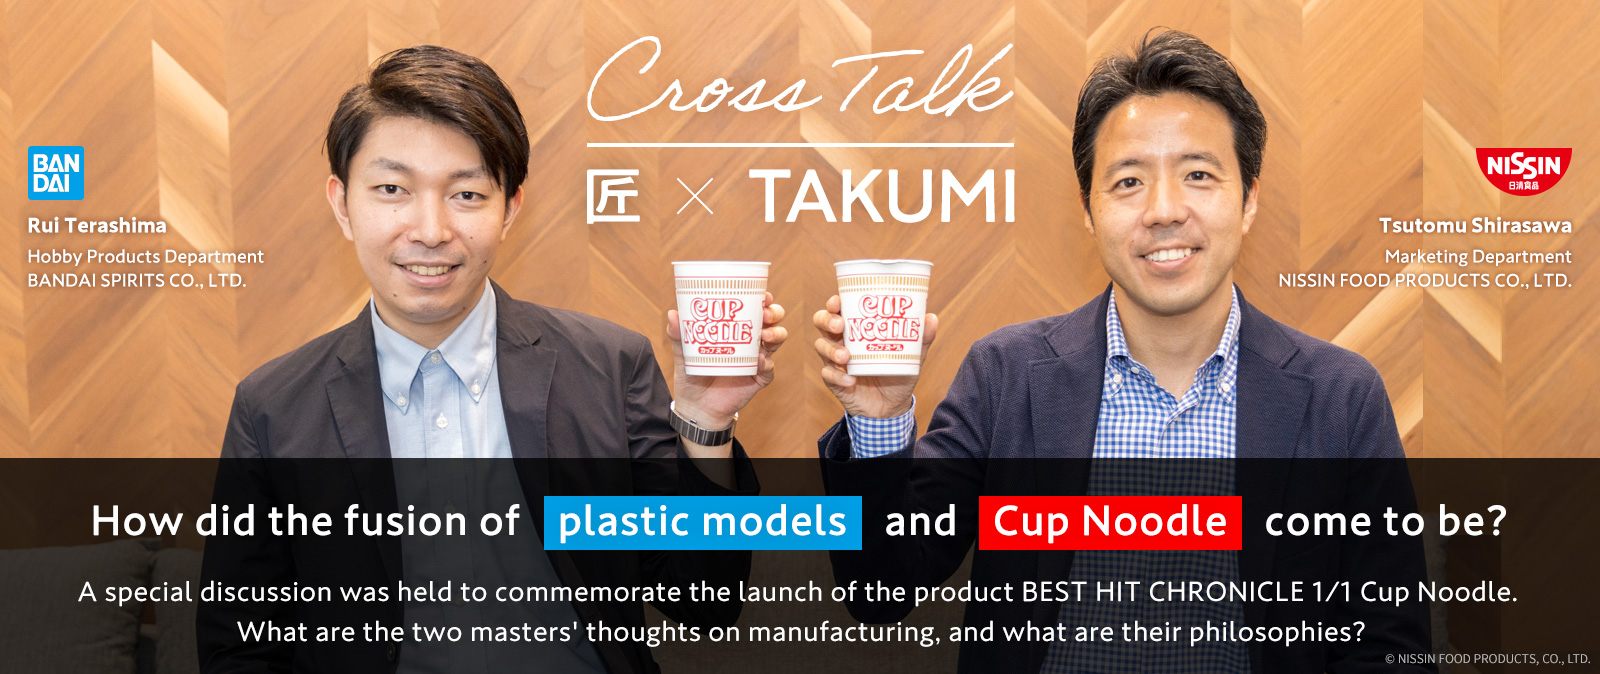 How did the fusion of plastic models and Cup Noodle come to be?